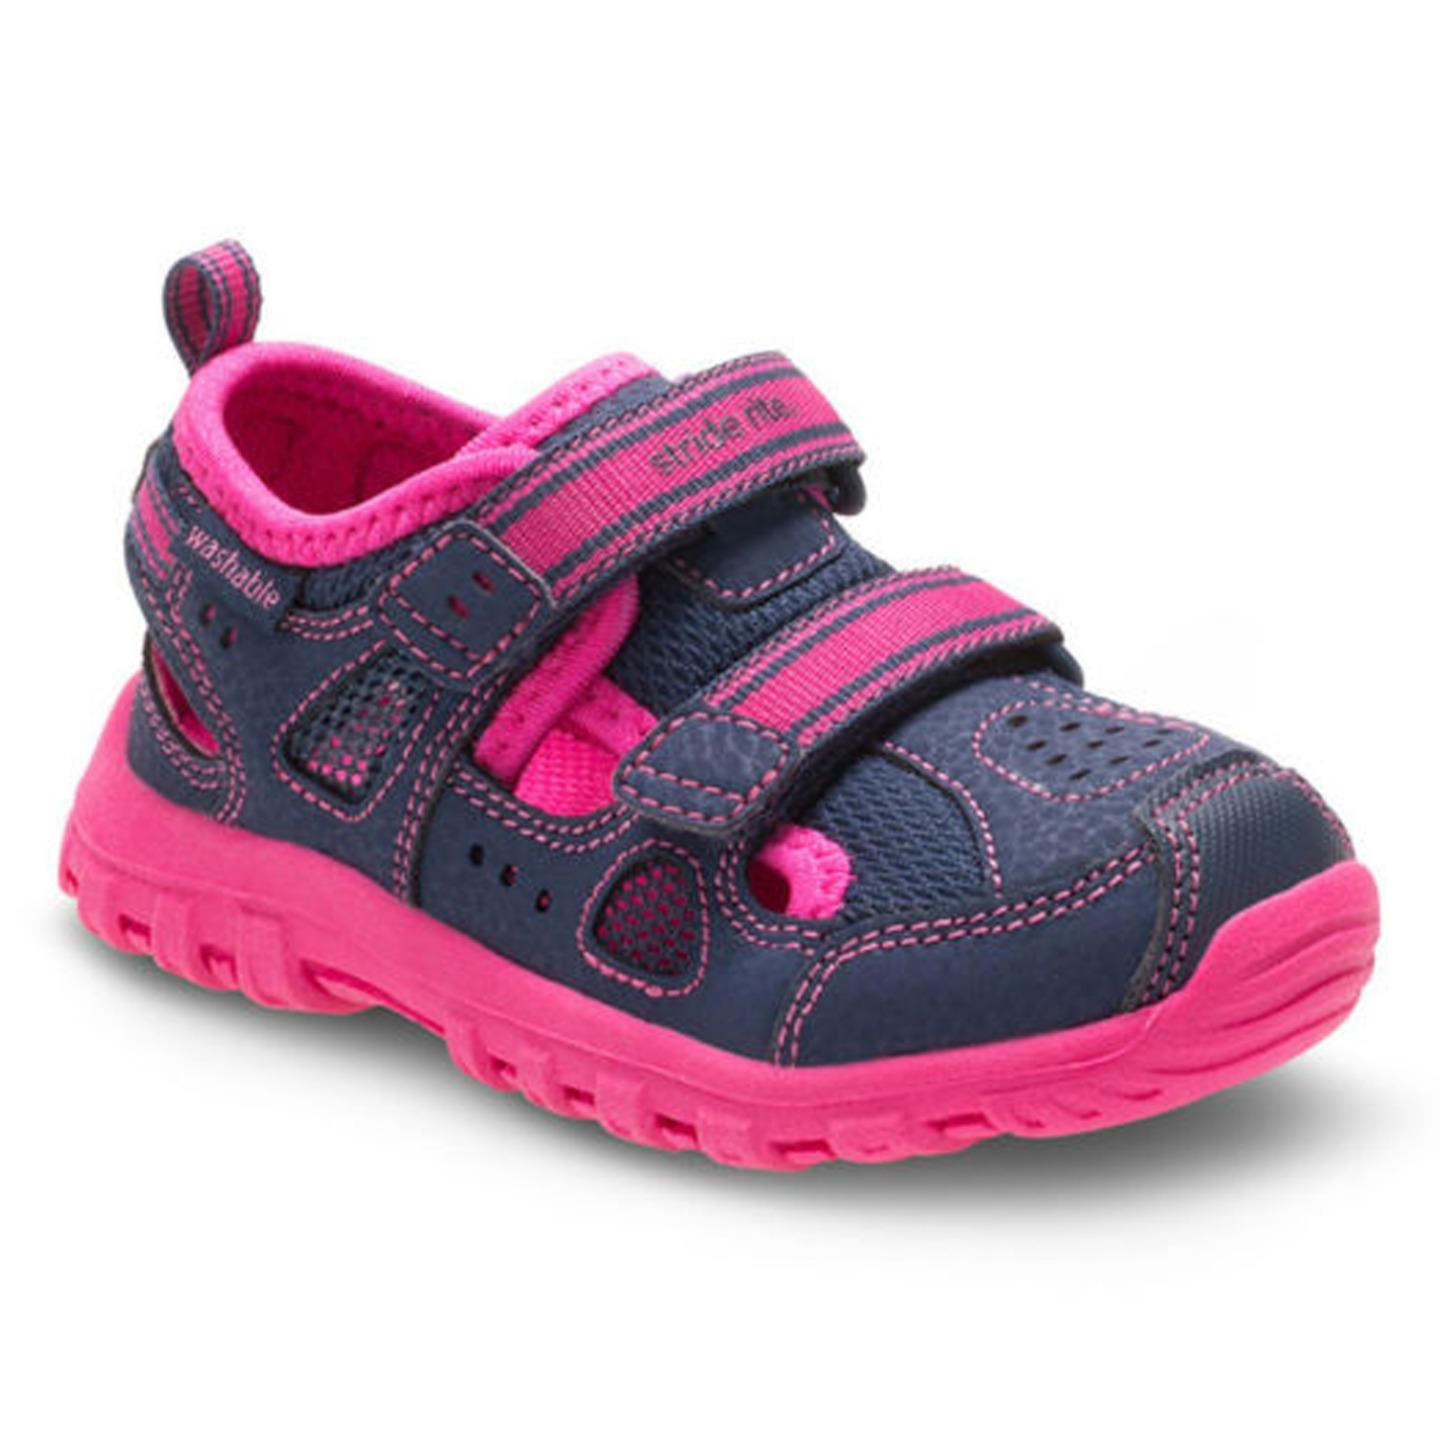 Stride Rite Baby Girl's Made 2 Play Christiana (Toddler) Navy Pink Shoe 10 W by Stride Rite